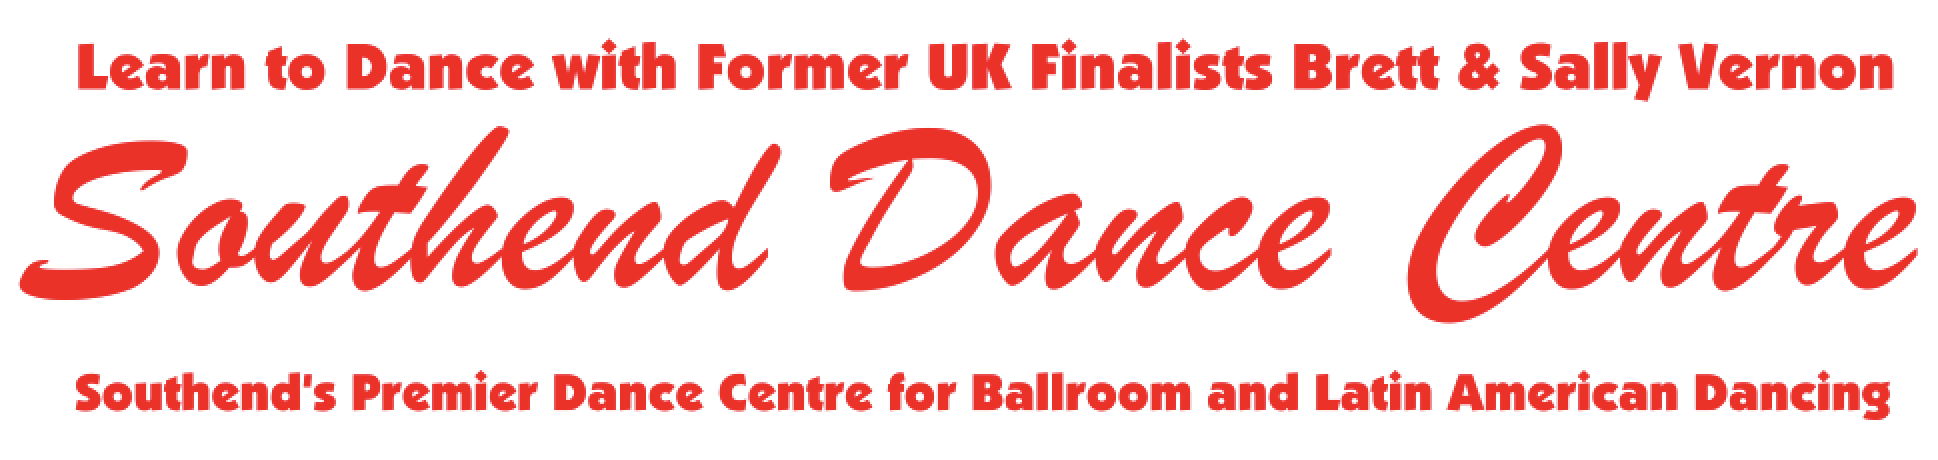 Southend Dance Centre